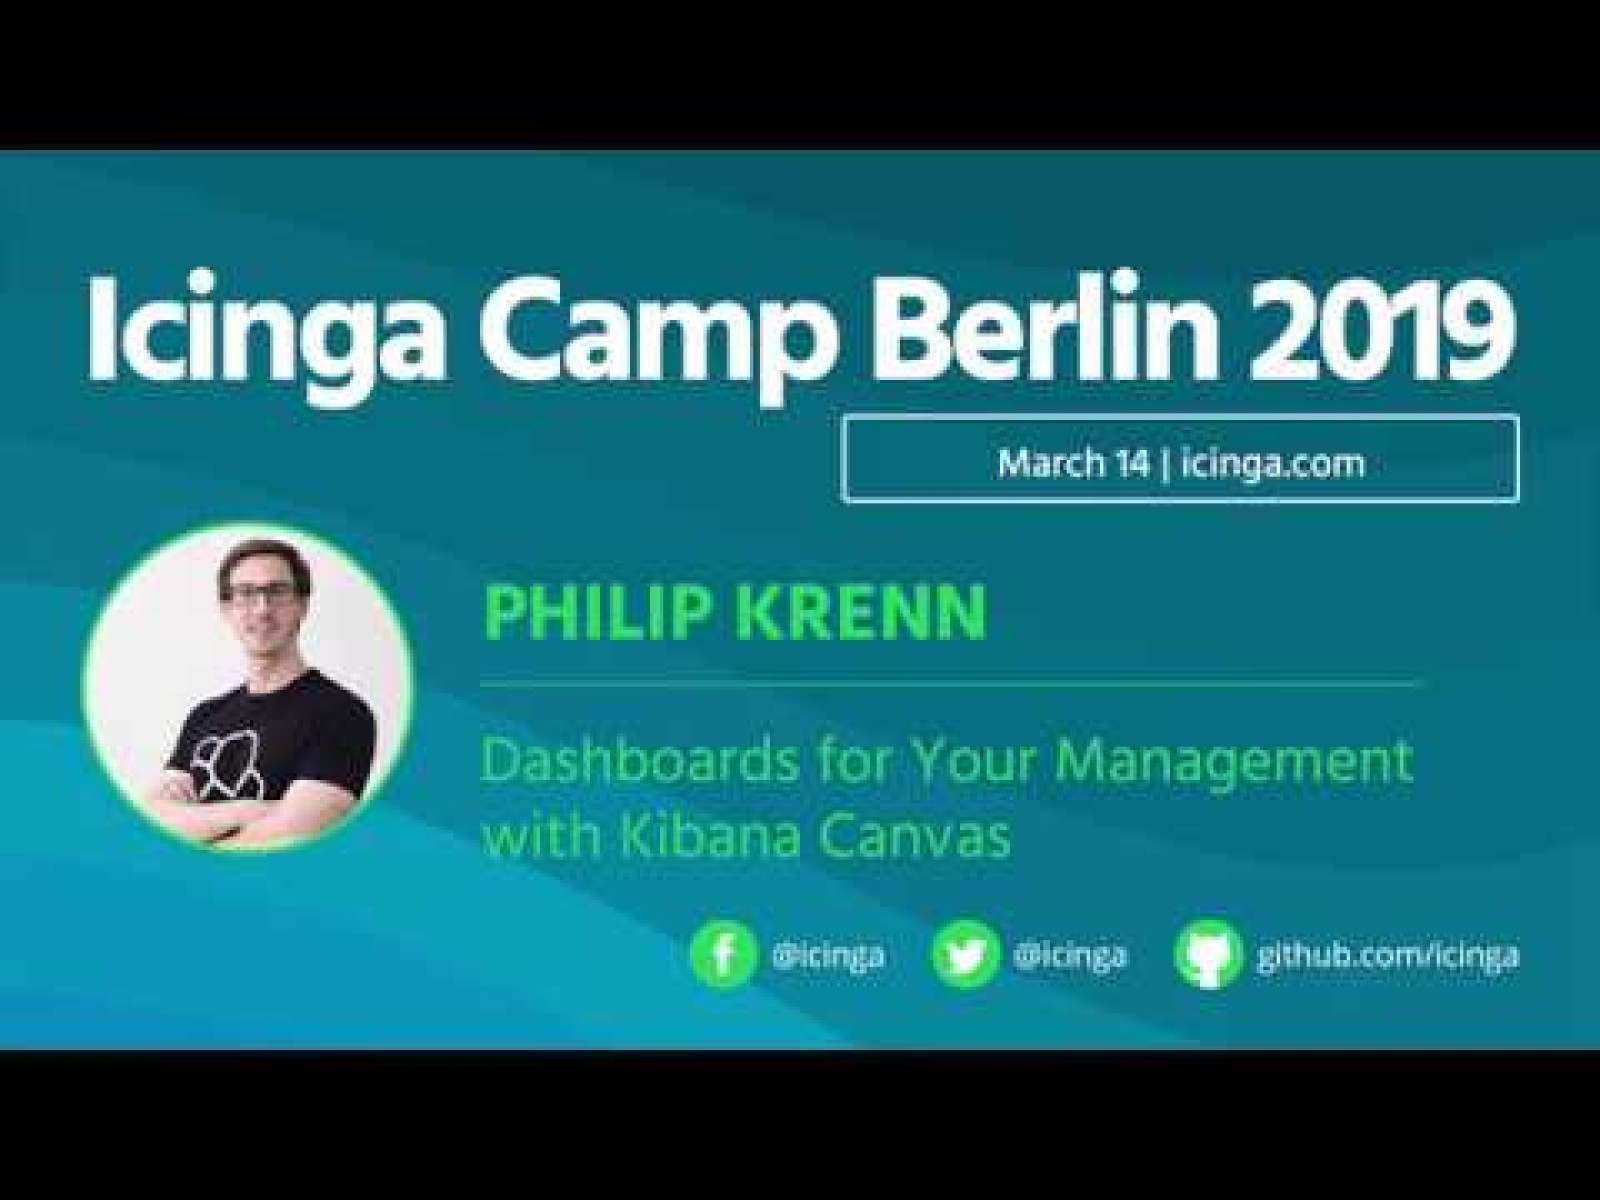 Dashboards for Your Management with Kibana Canvas